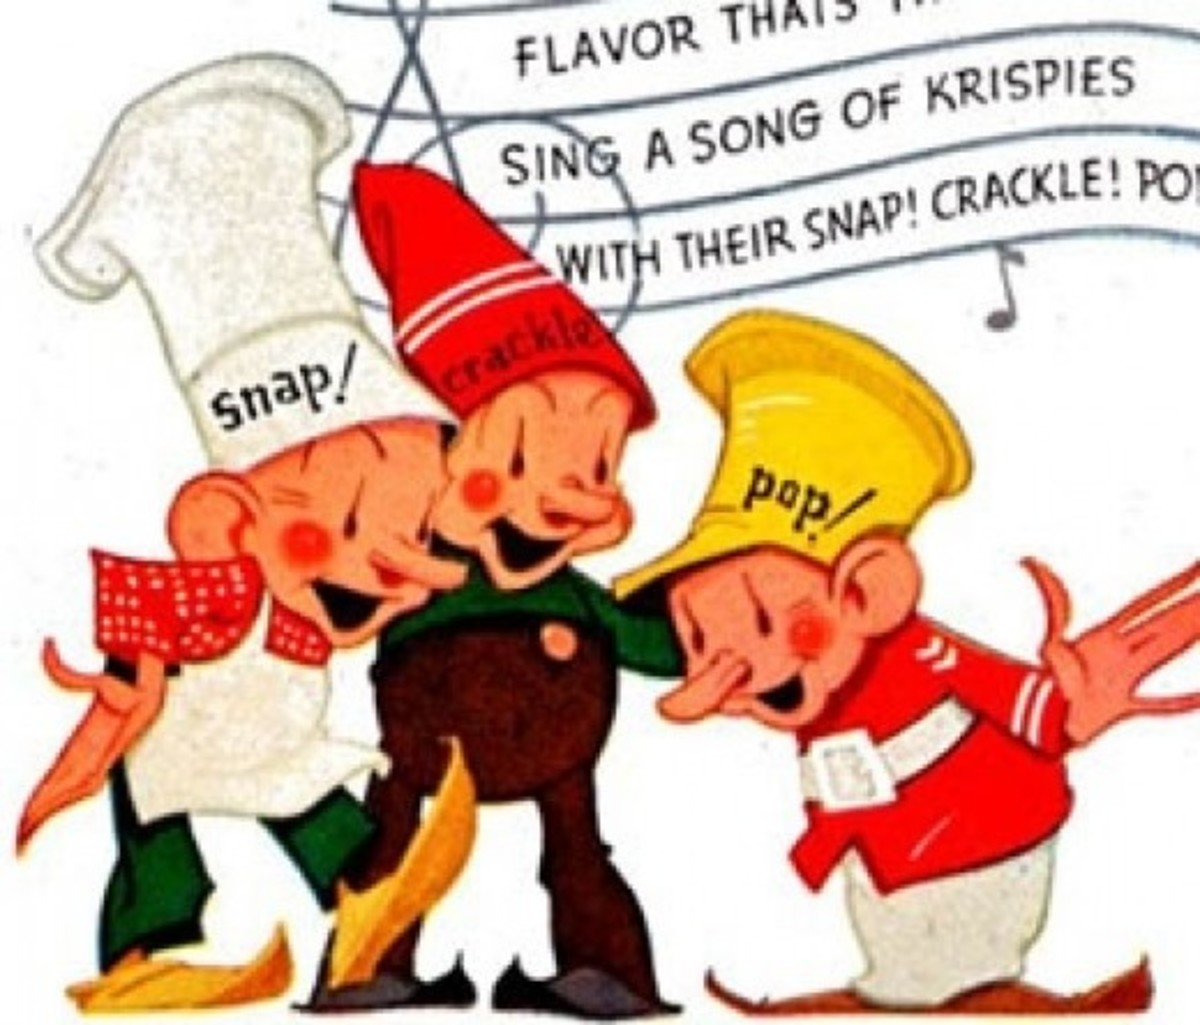 In the 1930s the mascots looked more elfish, with exaggerated noses